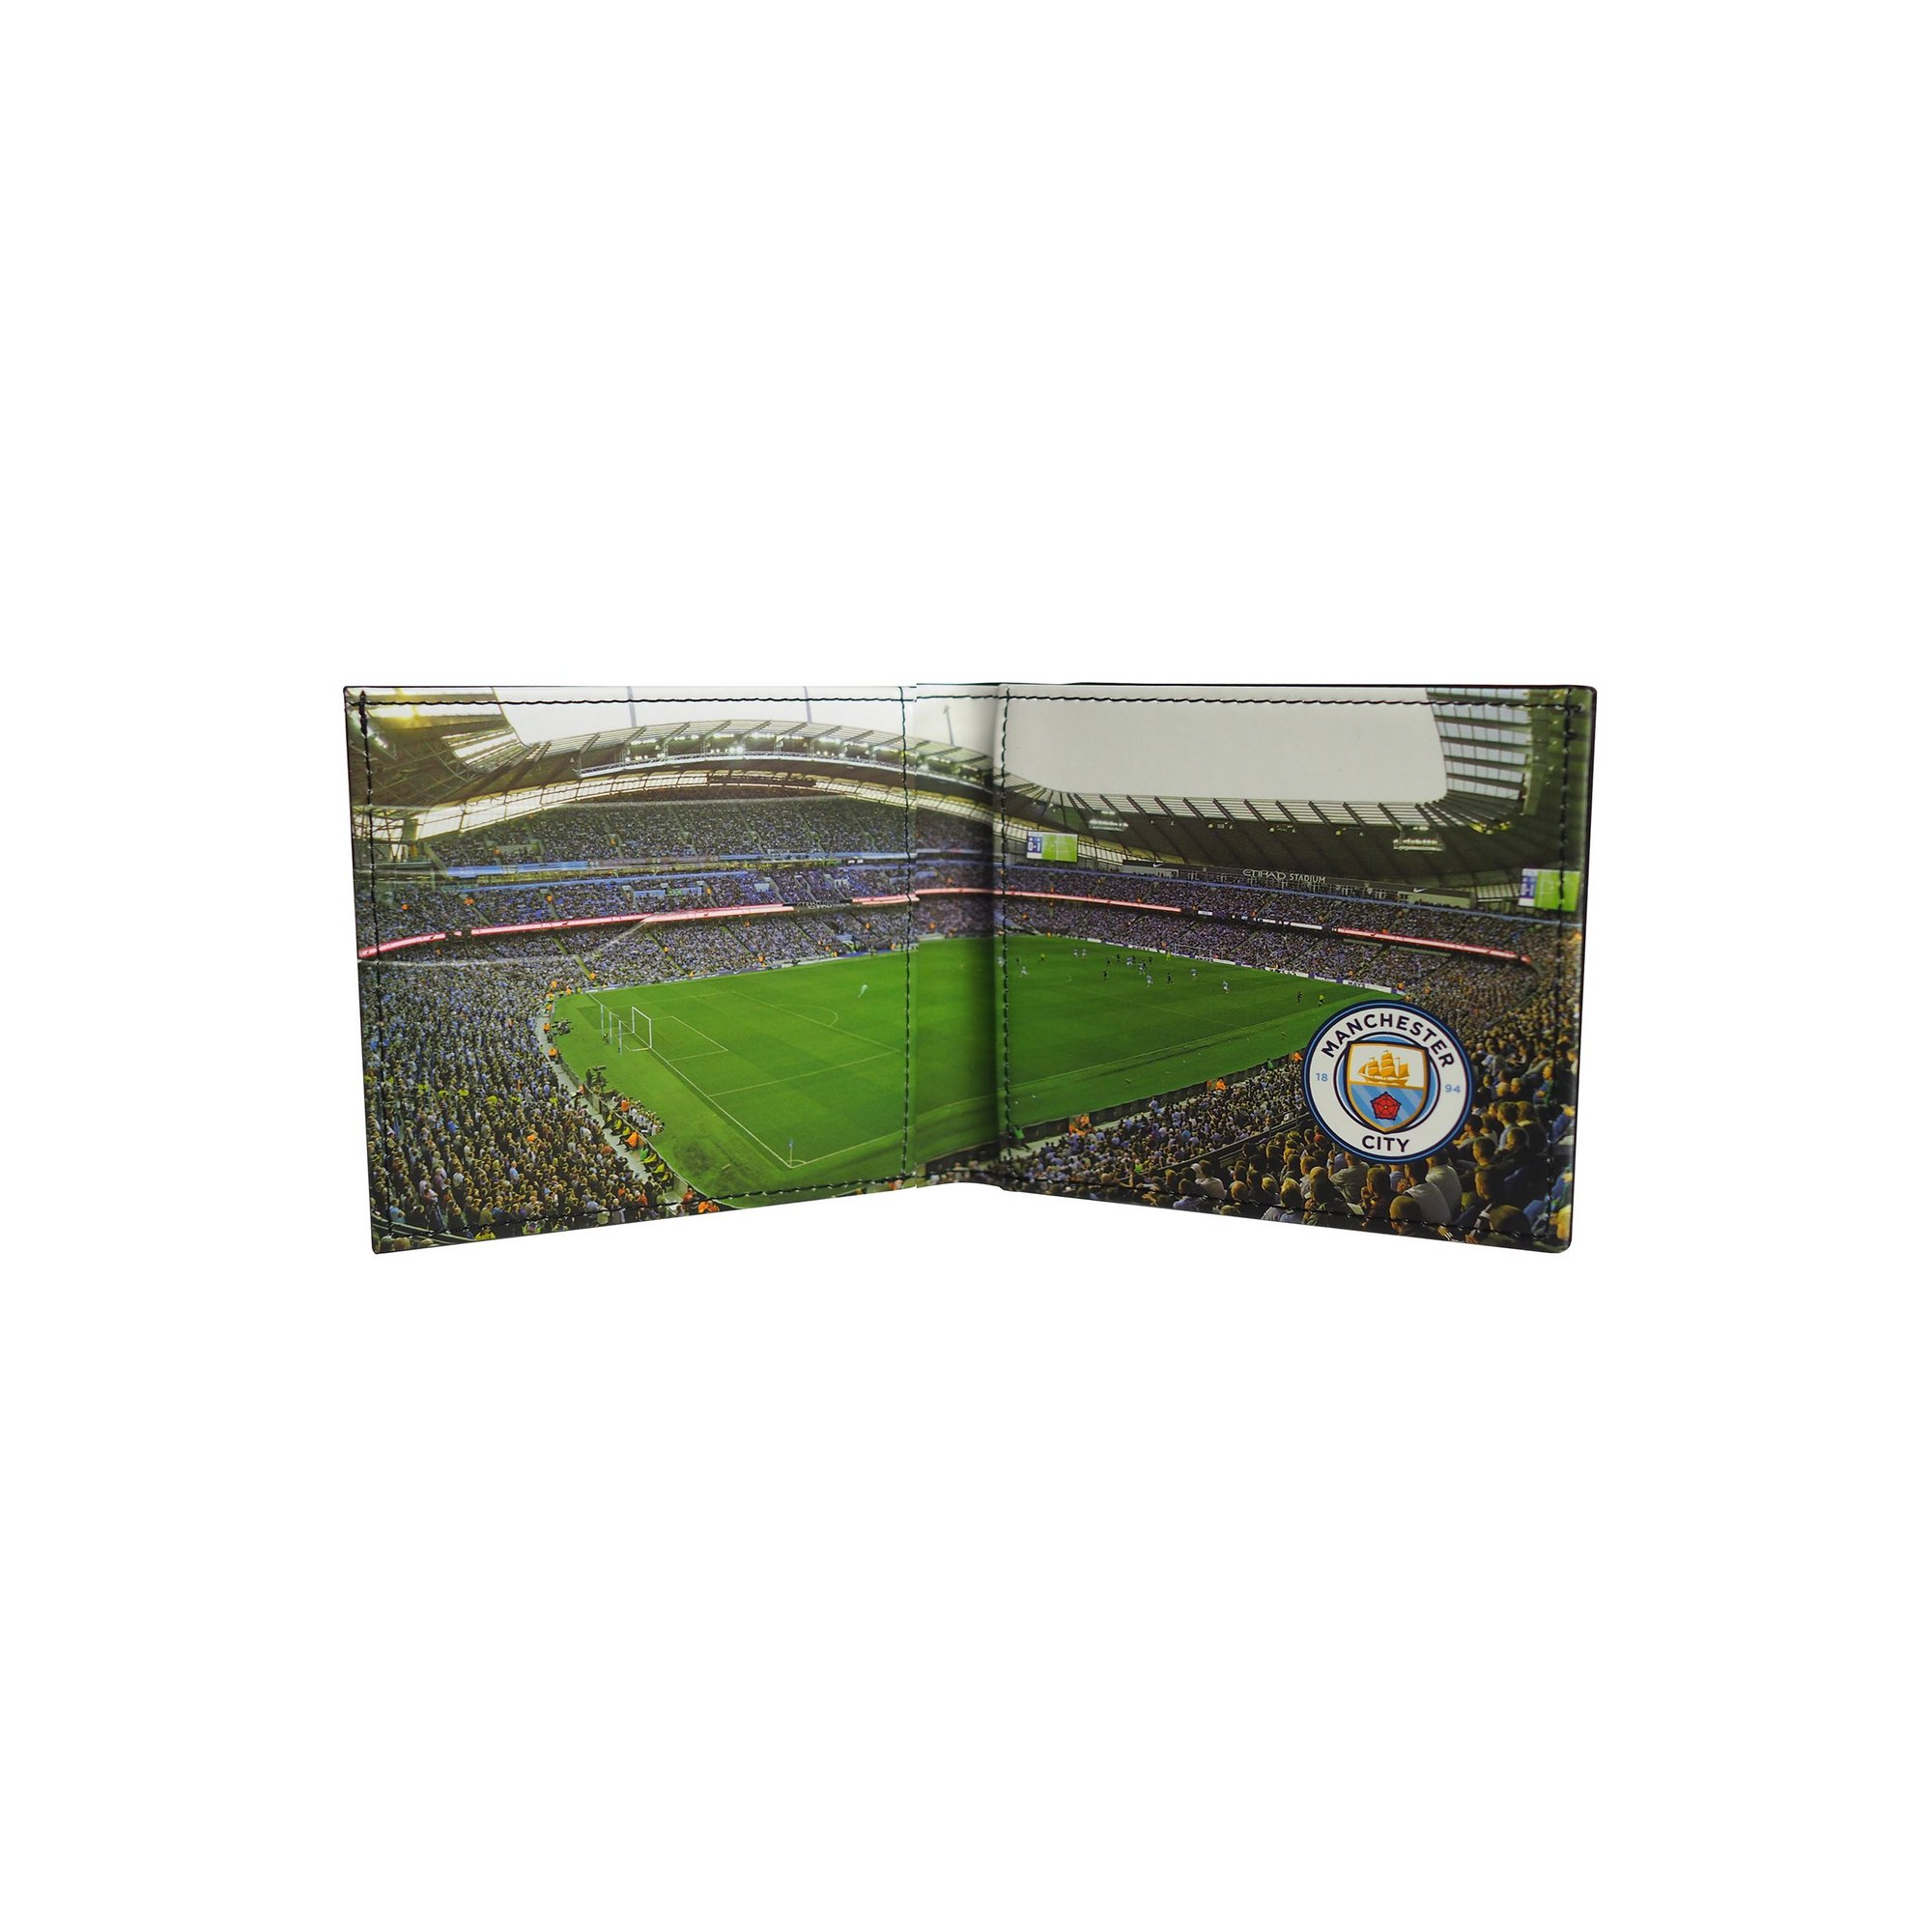 Image of Football Club Stadium Leather Wallet - Manchester City FC